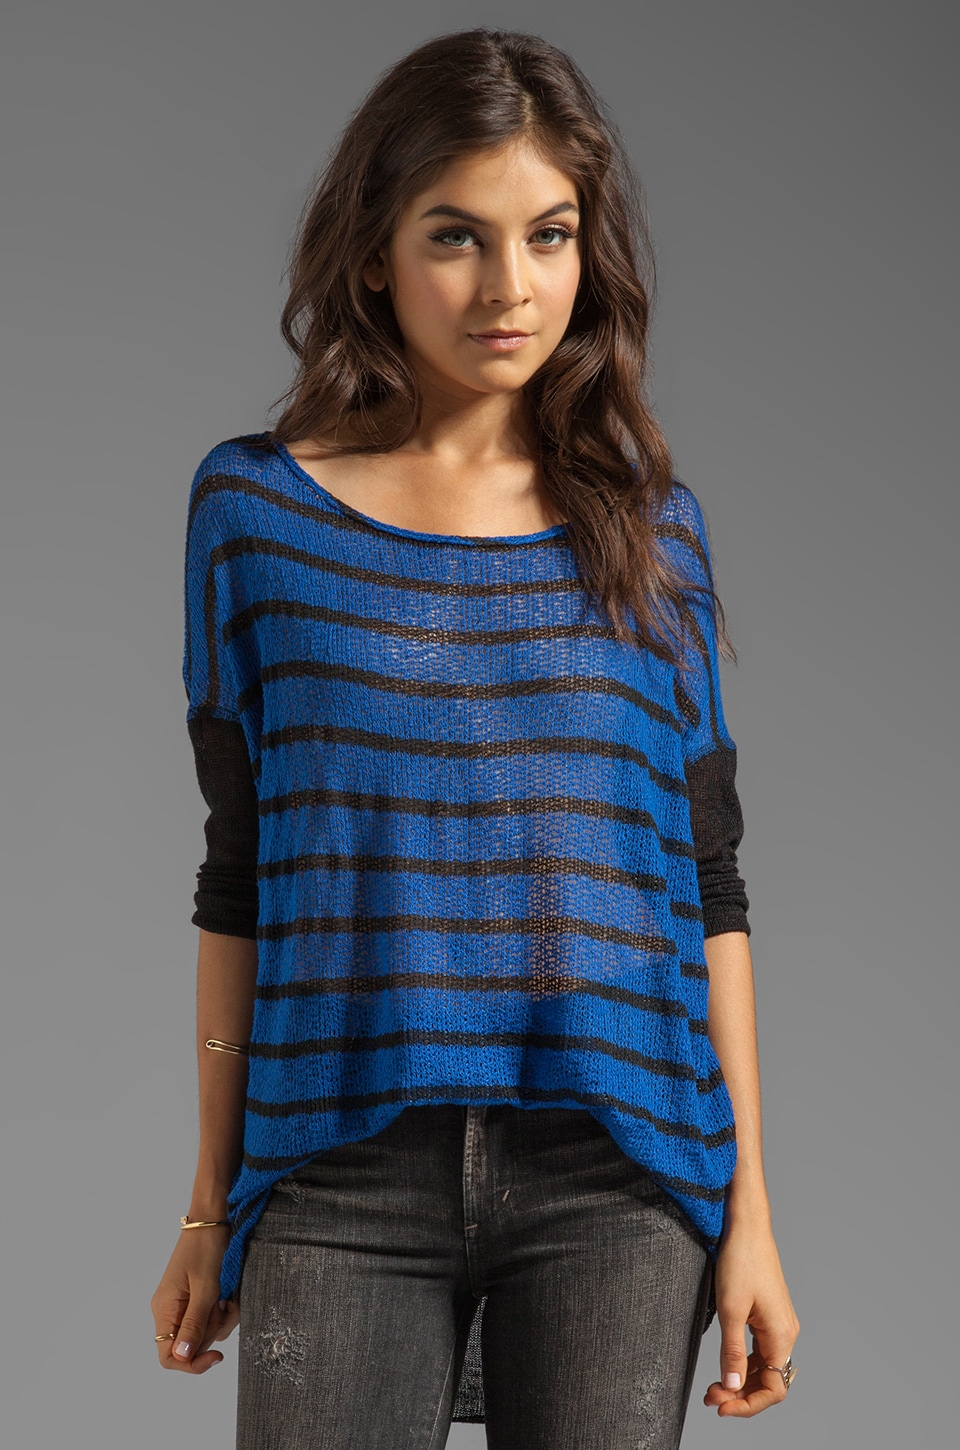 Tylie Stripe Sweater in Cobalt Blue/Black